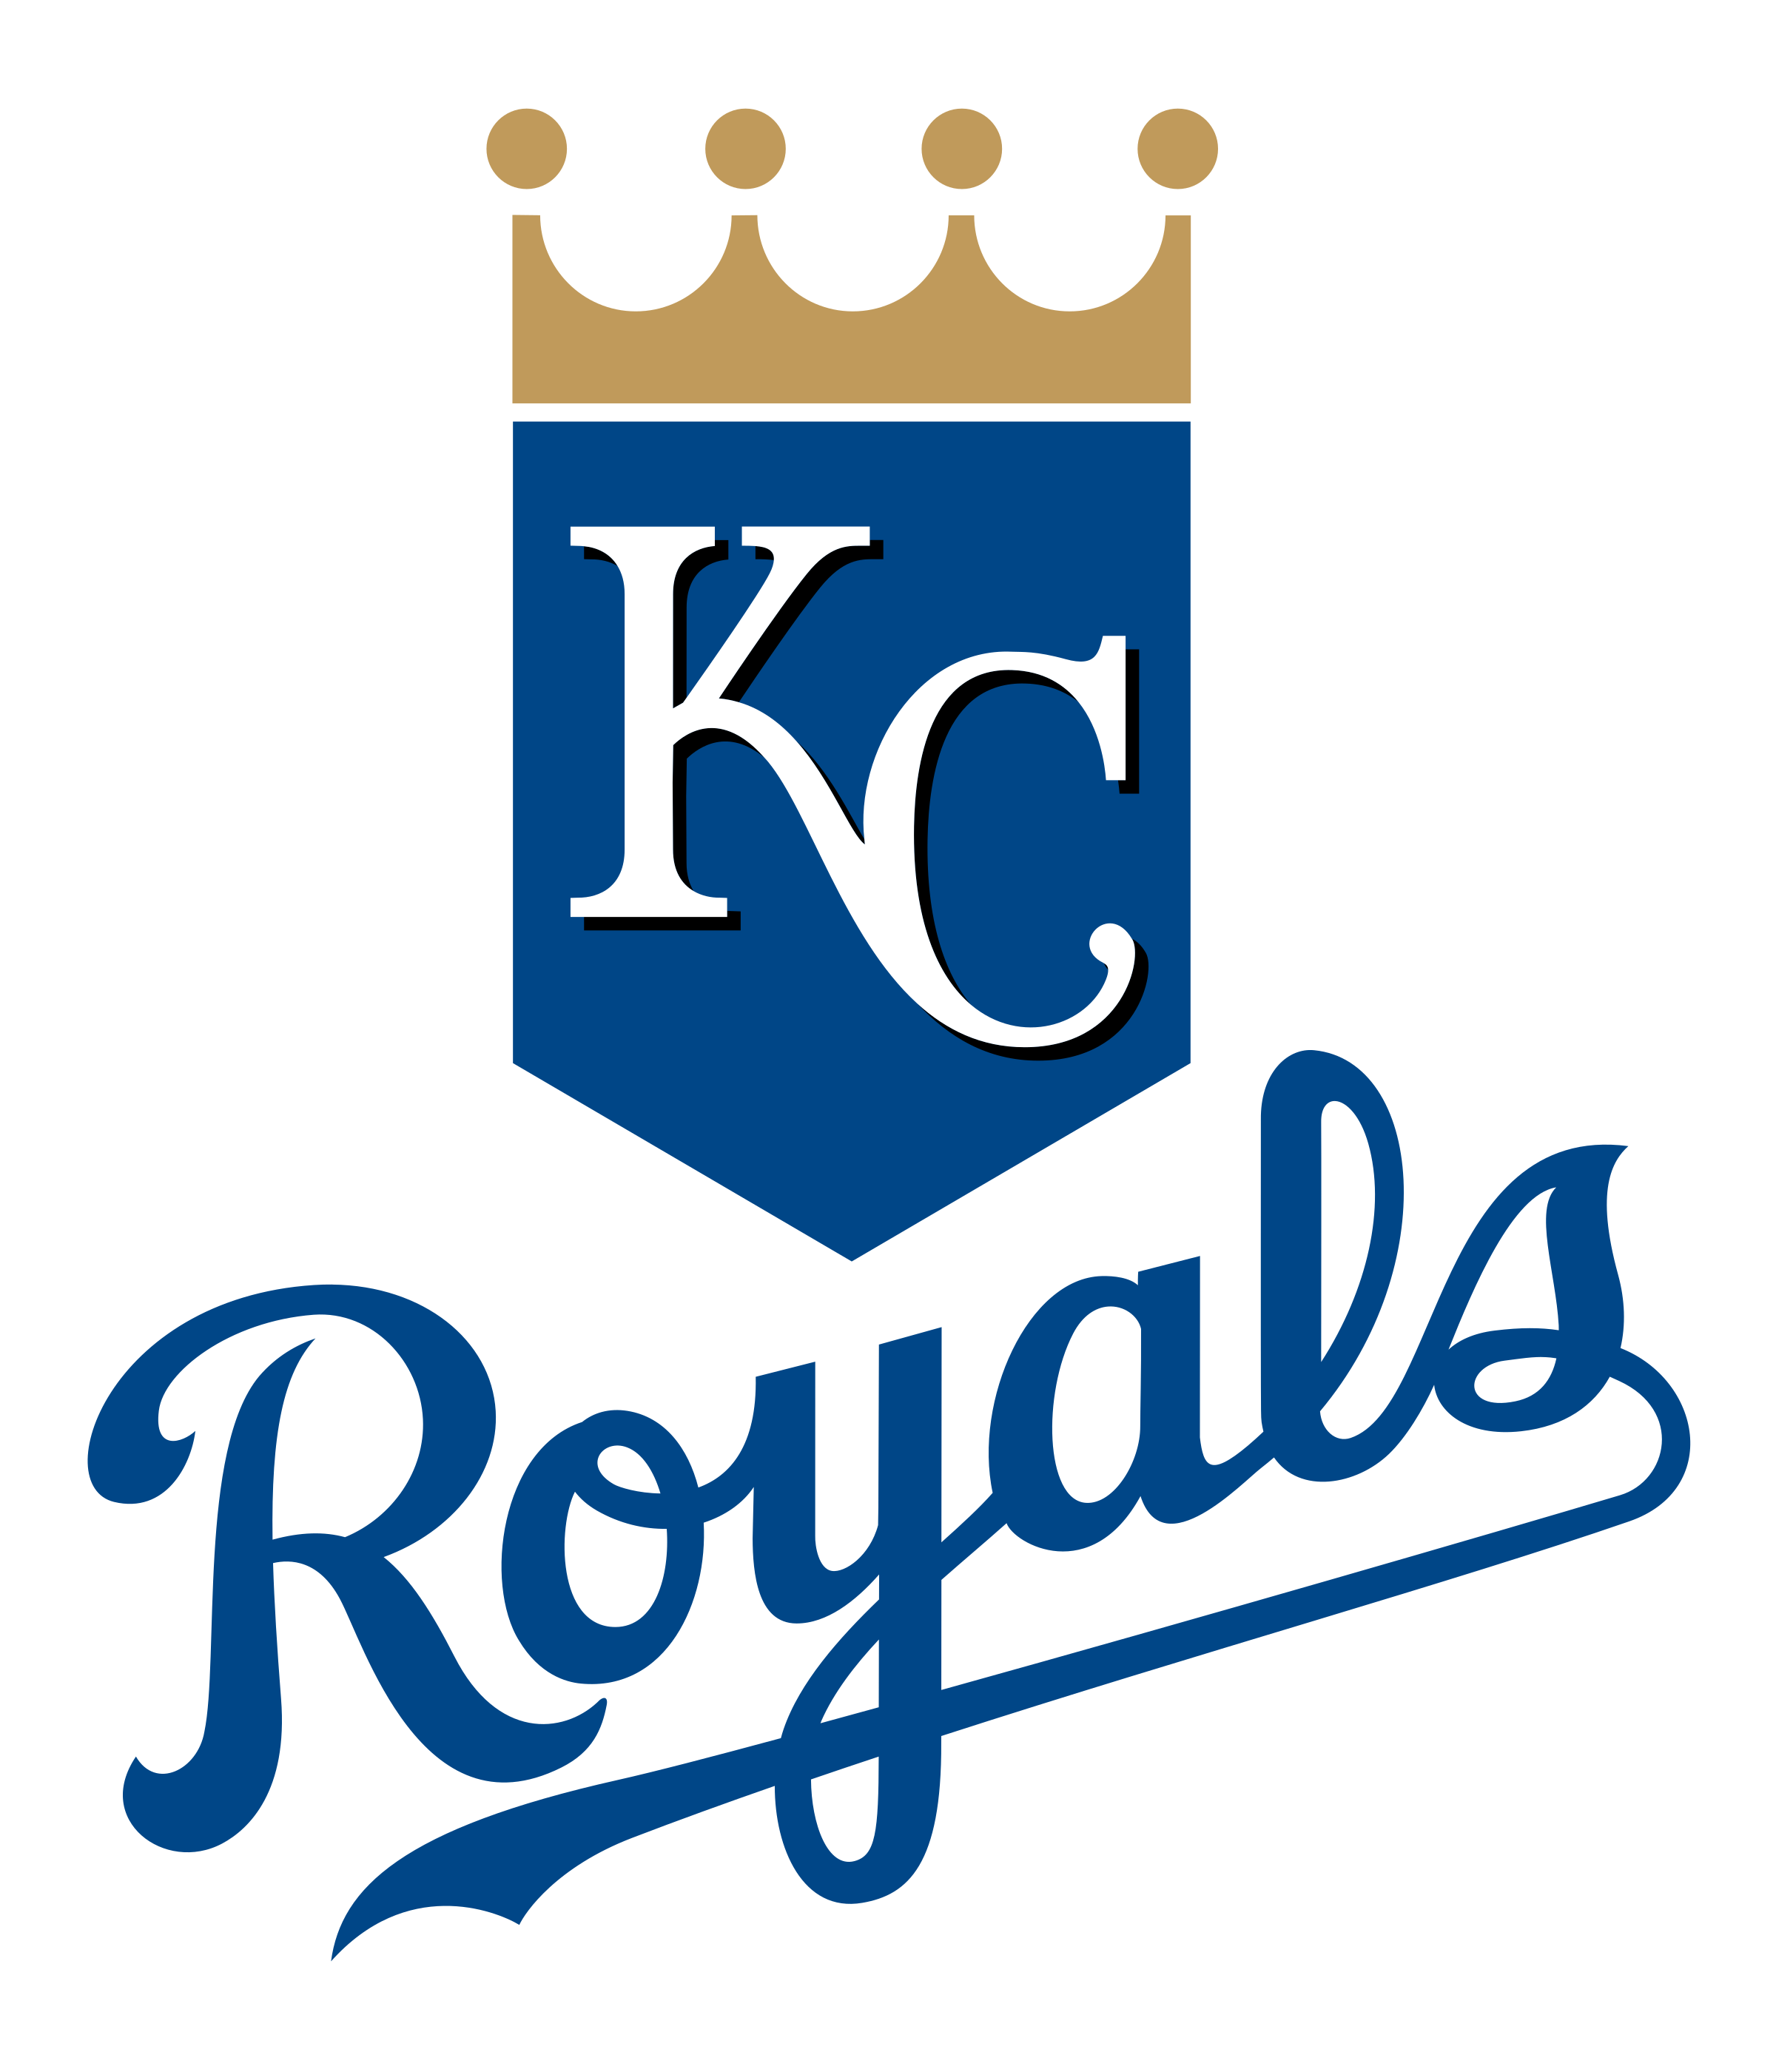 Houston vector city. Kansas royals logo png